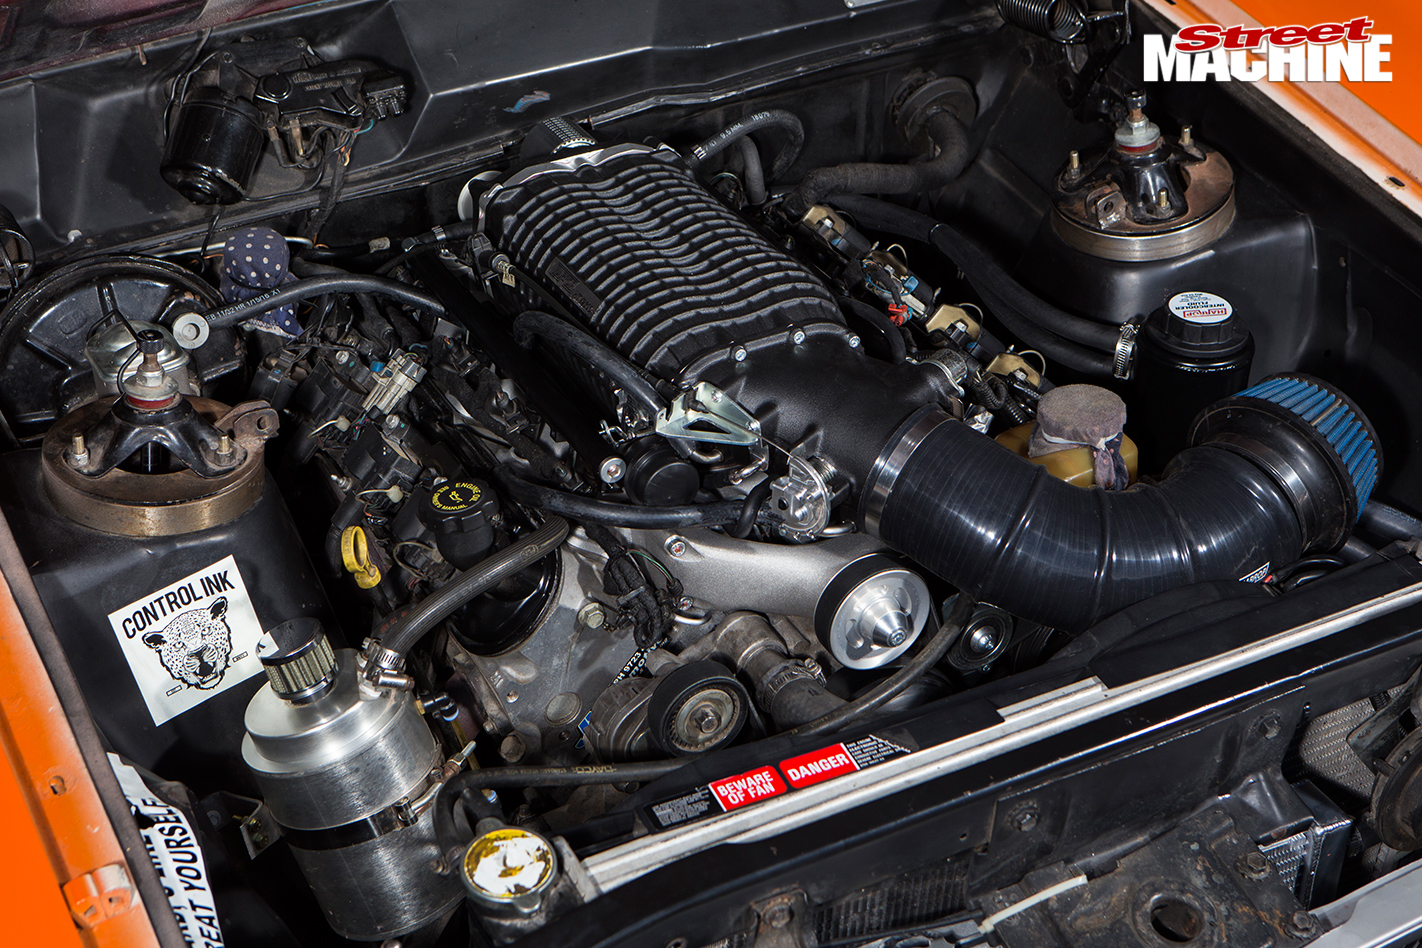 Ford -falcon -xy -drifter -engine -bay